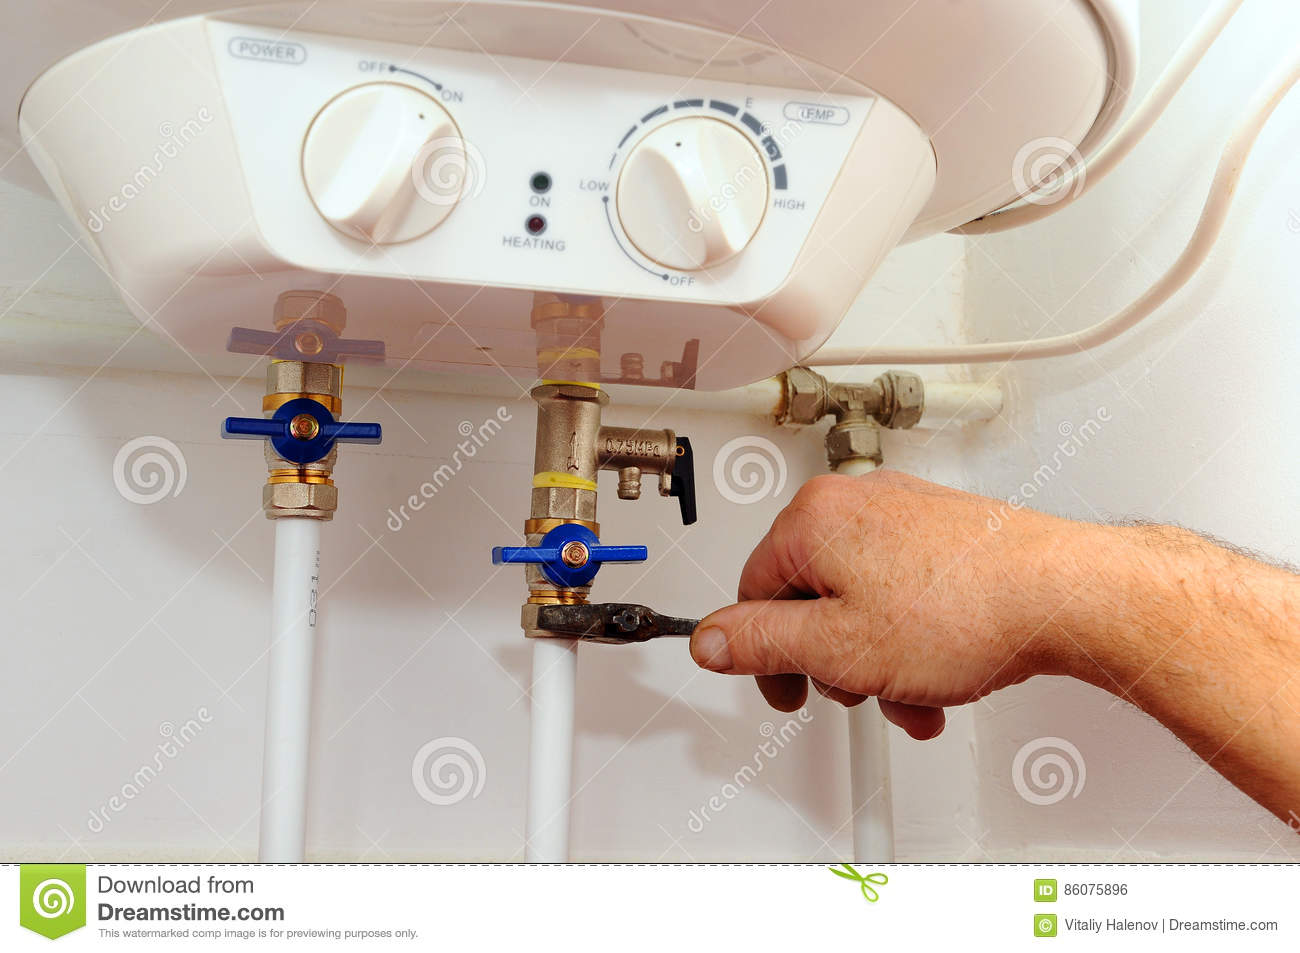 Domestic Plumbing Connections Connection Of Home Water Heater How To Wire Electric Download Fixing Boiler